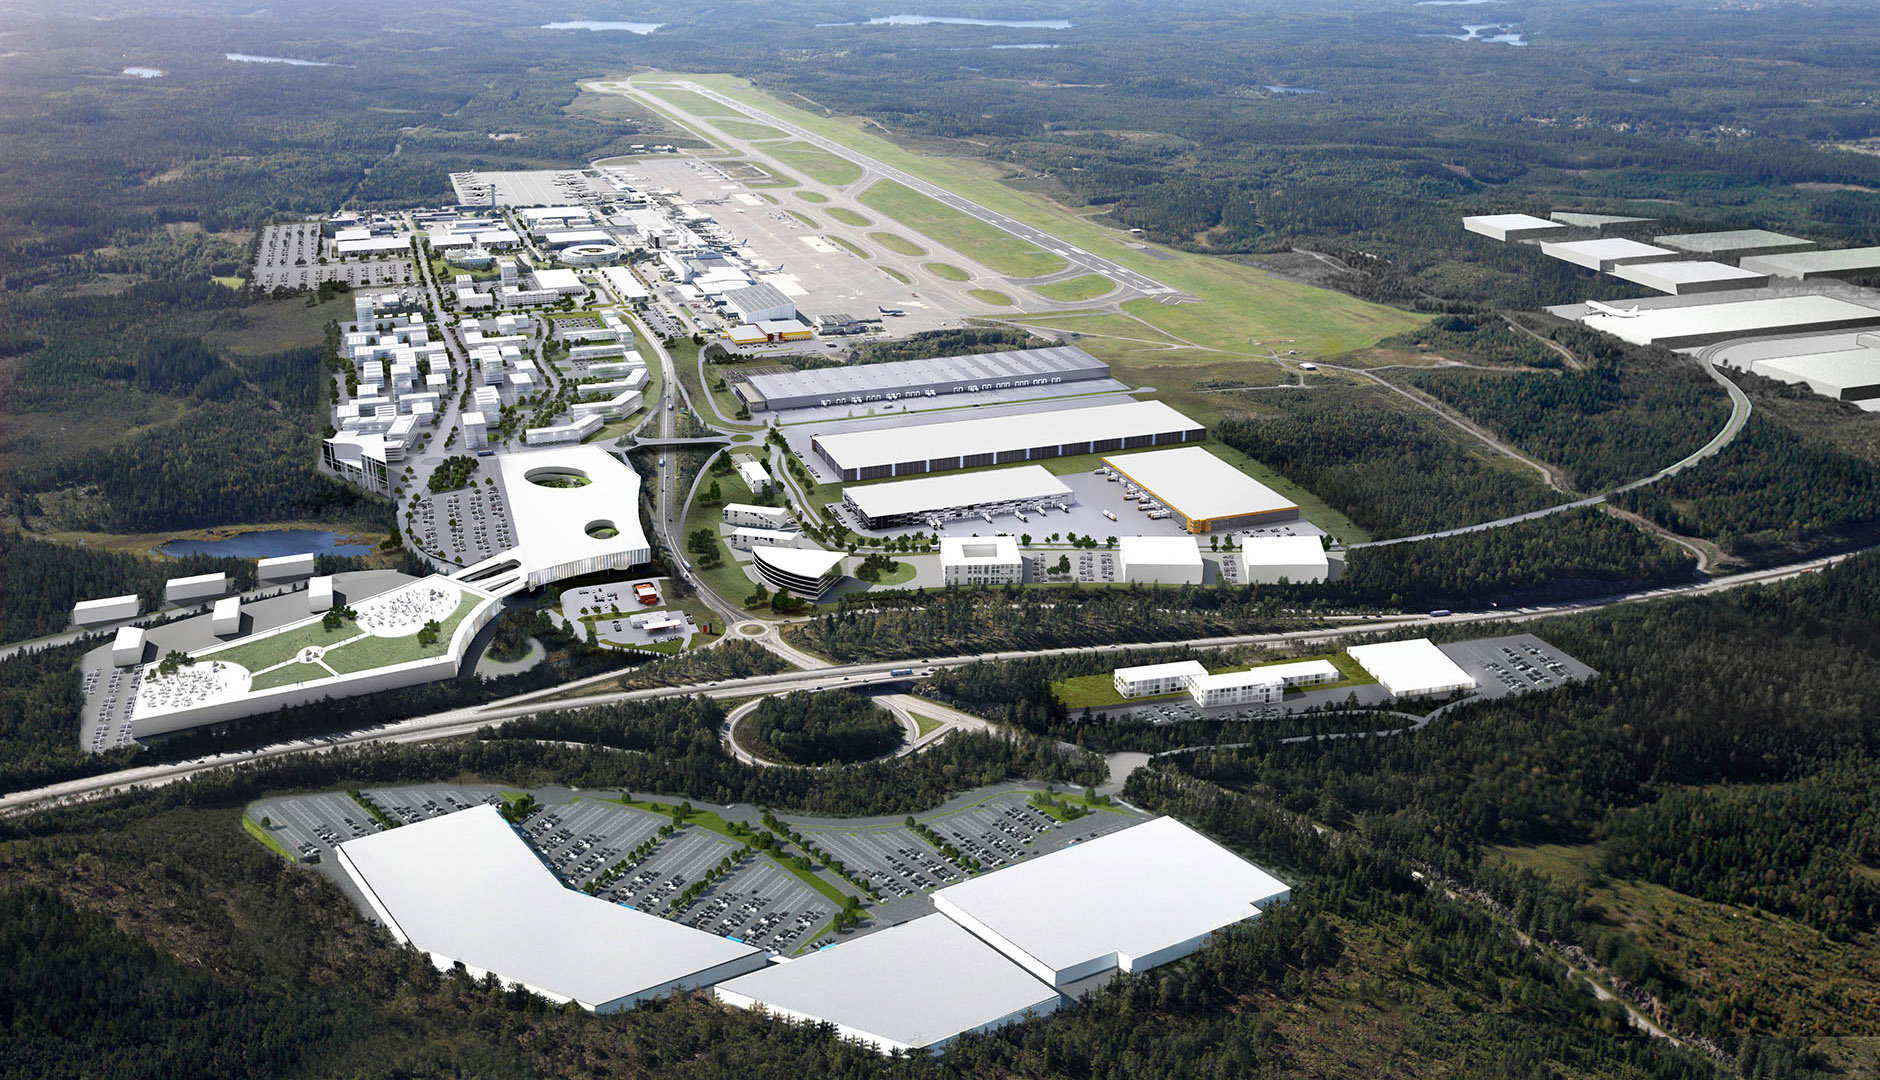 Göteborg Landvetter Airport and the Airport City development